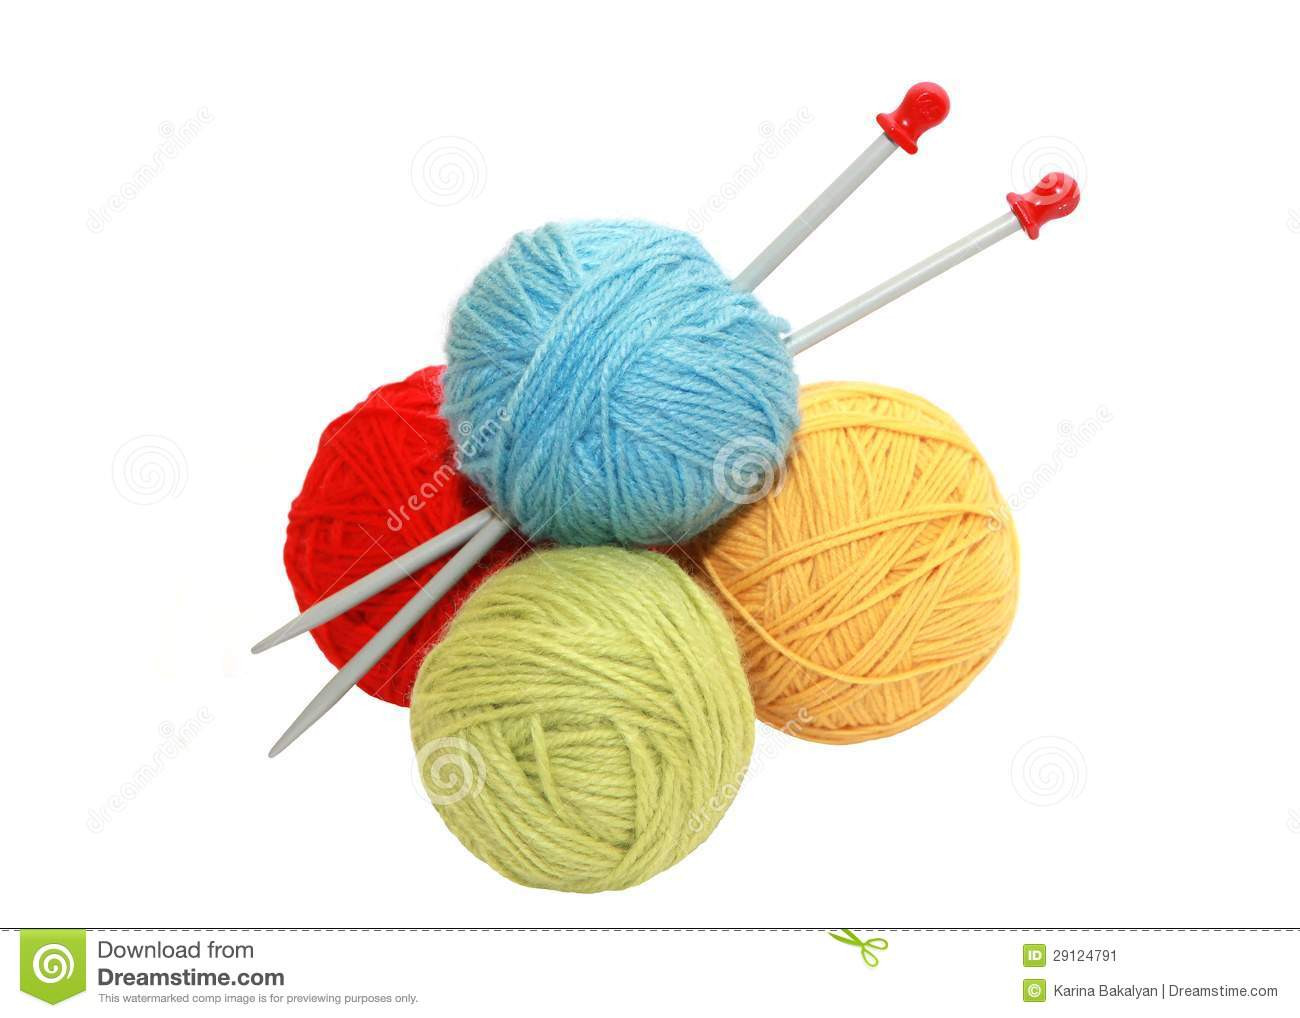 Awesome Color Yarn Balls and Knitting Needles Stock Image Image Knitting Needles and Yarn Of Amazing 46 Ideas Knitting Needles and Yarn